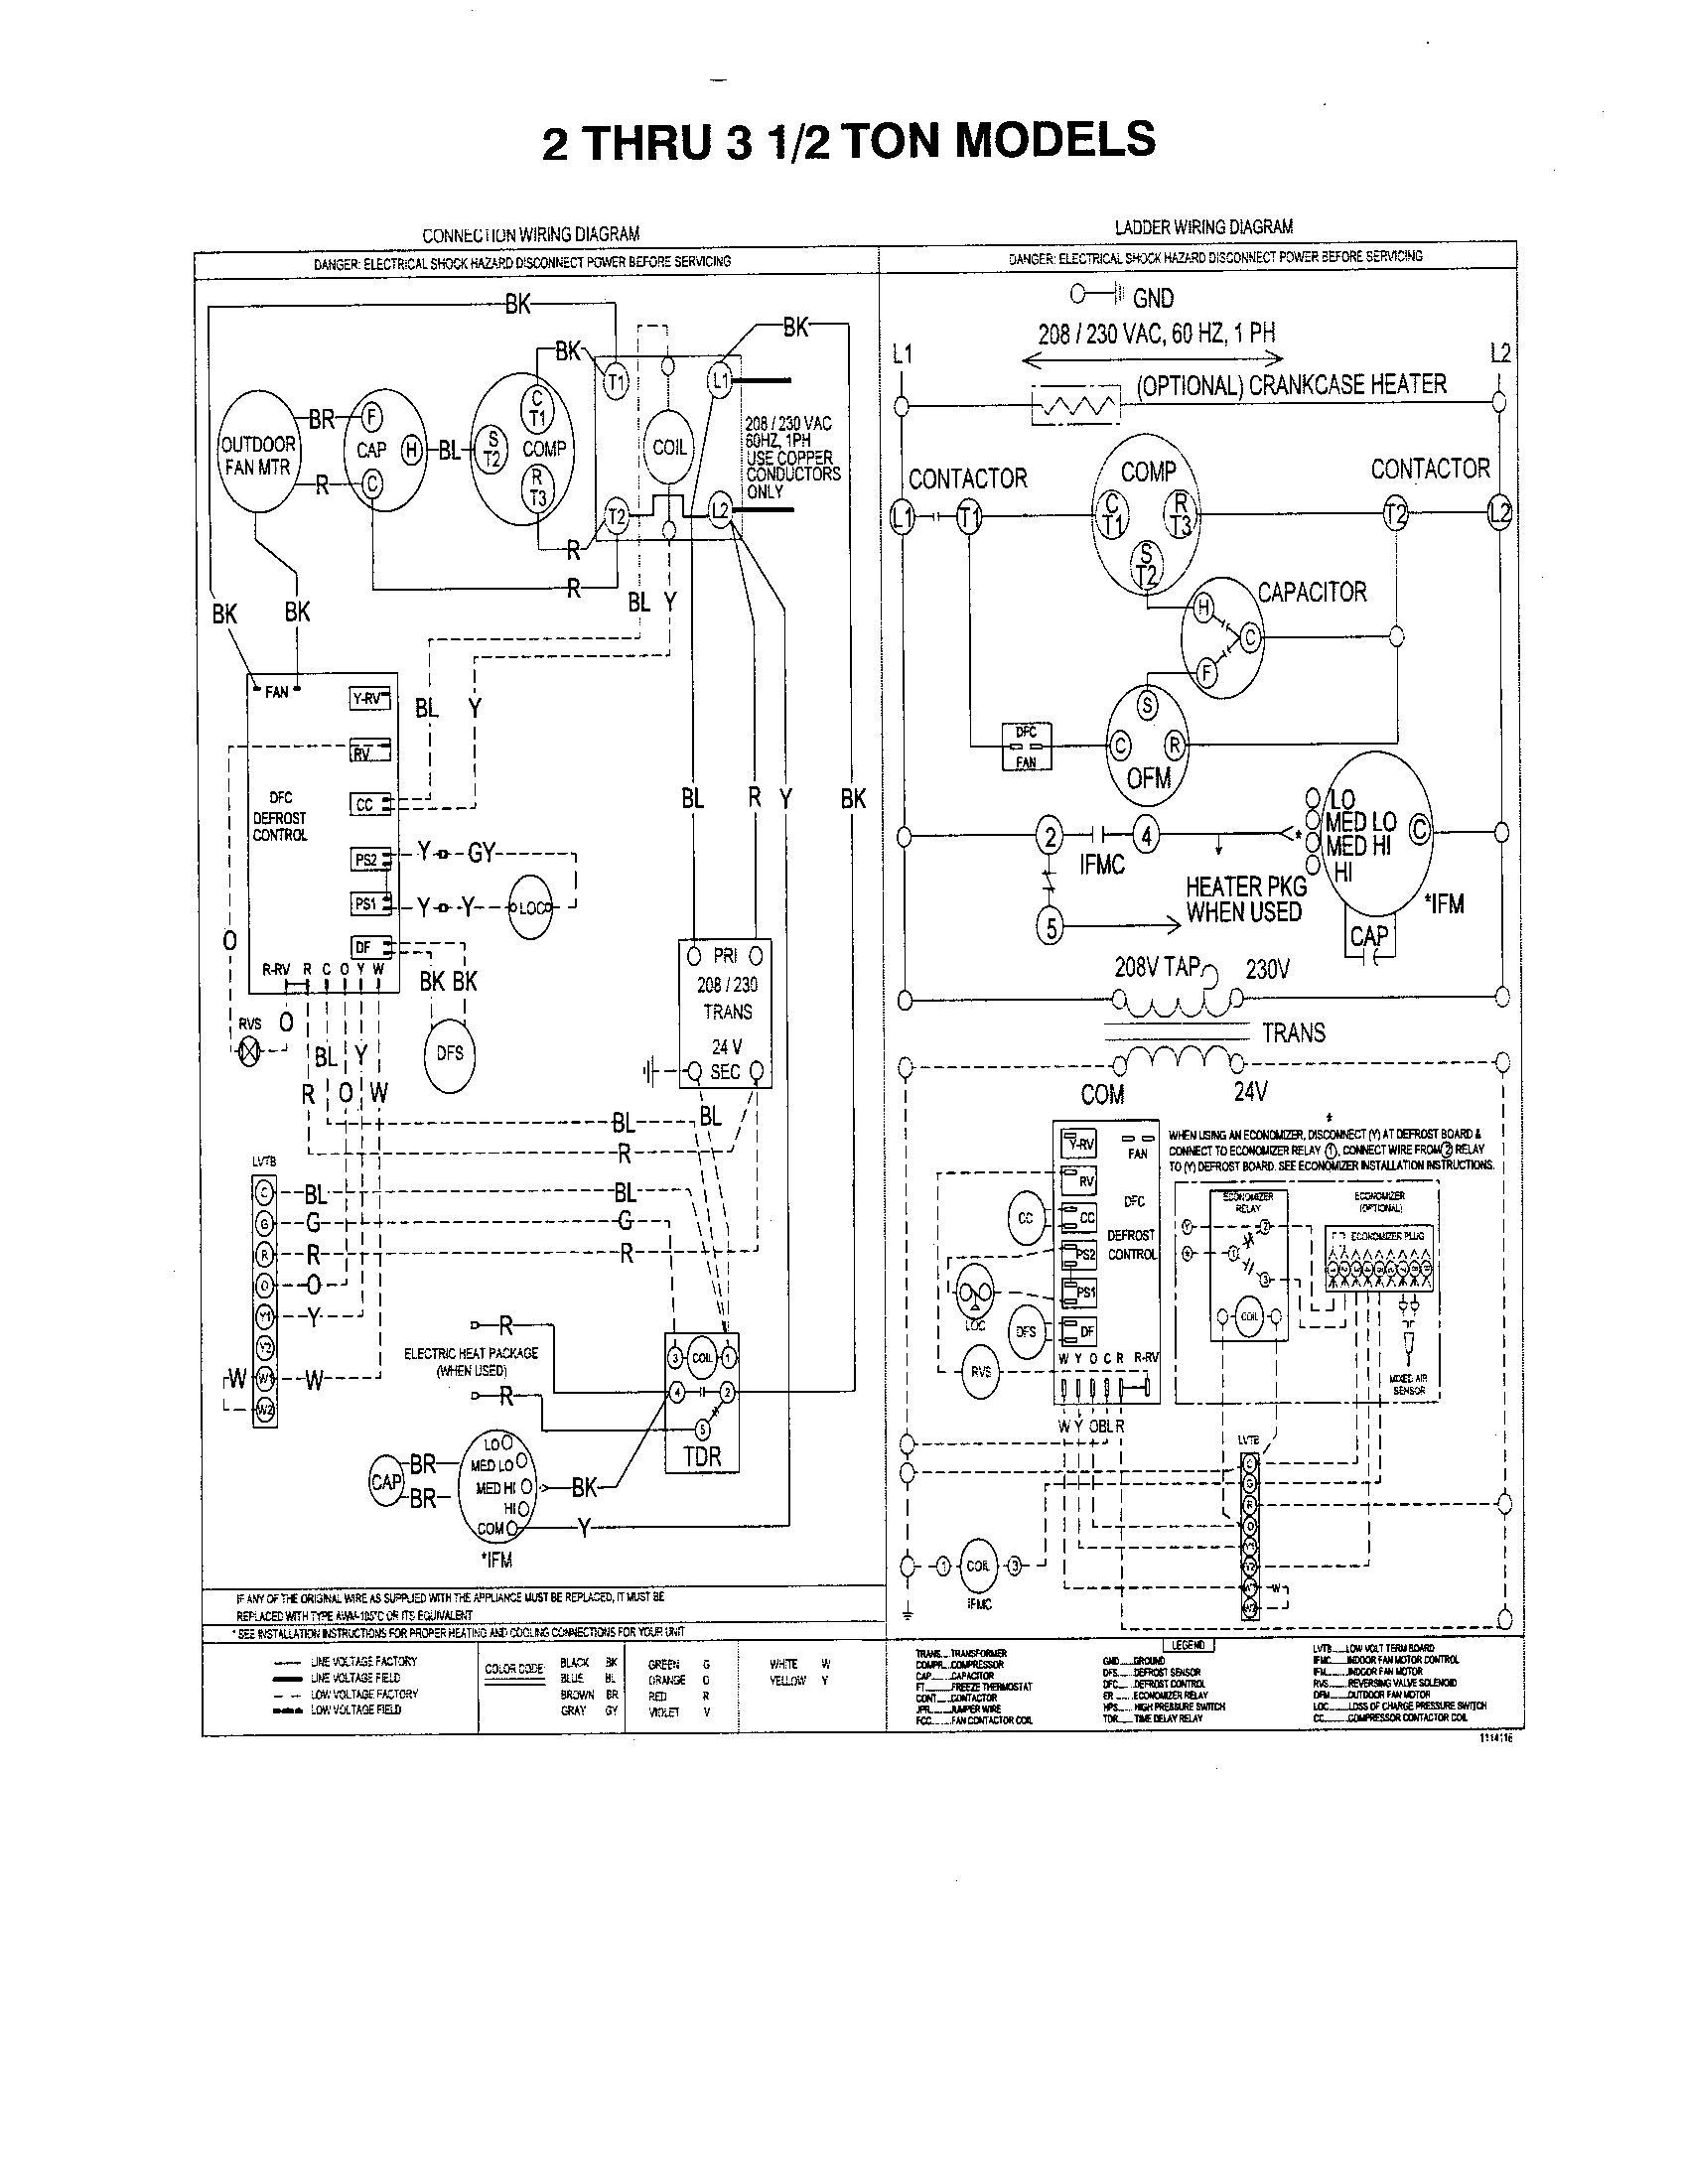 wiring diagram for kenmore upright freezer kenmore upright